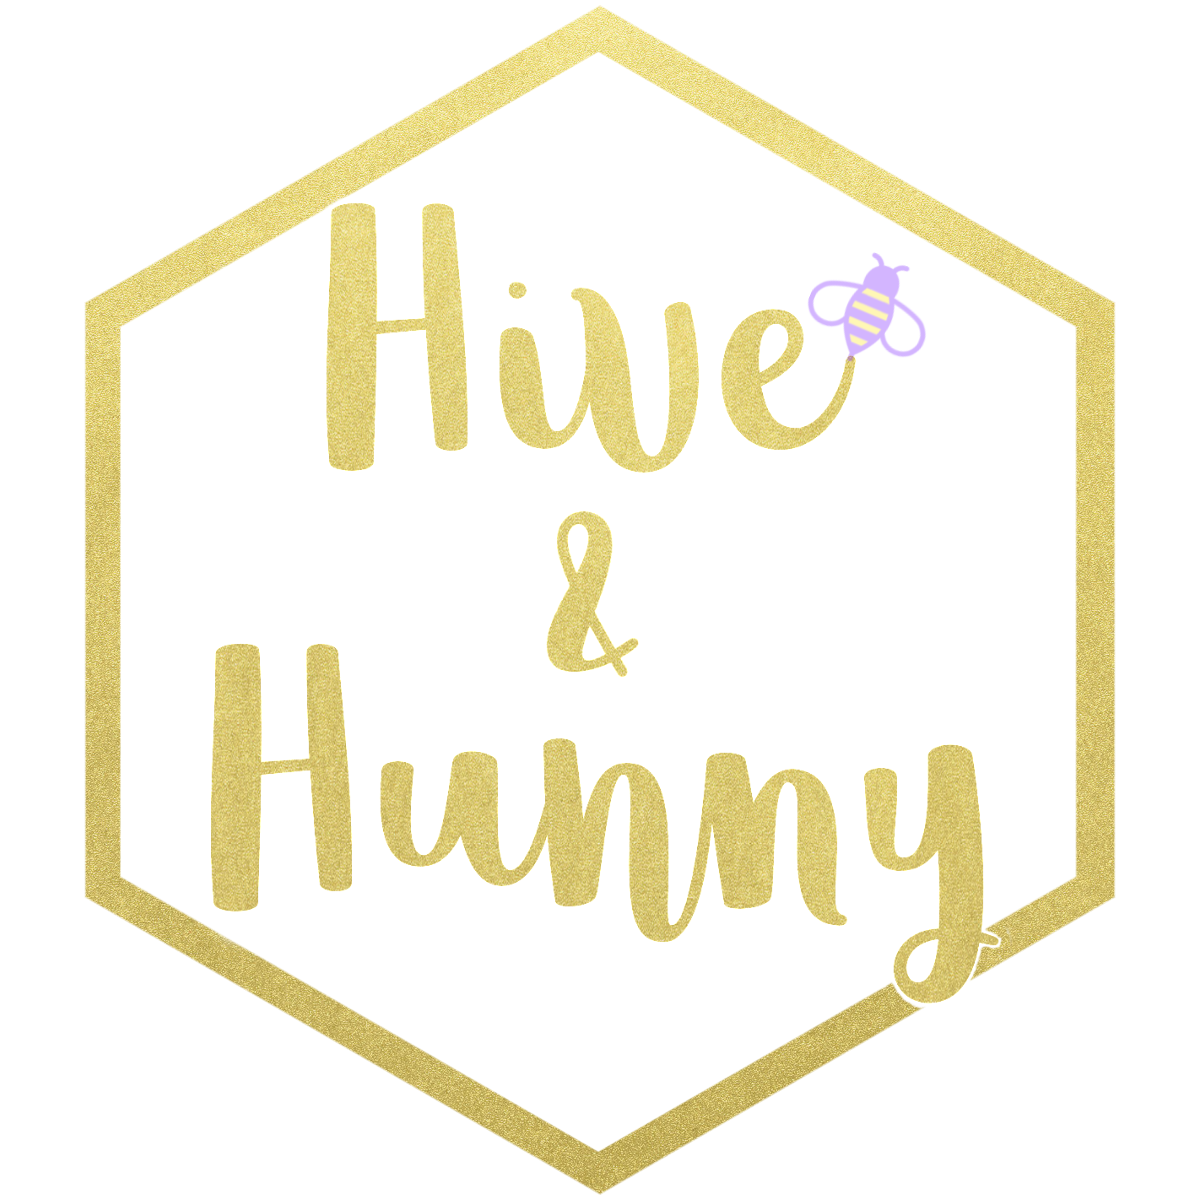 Hive and Hunny